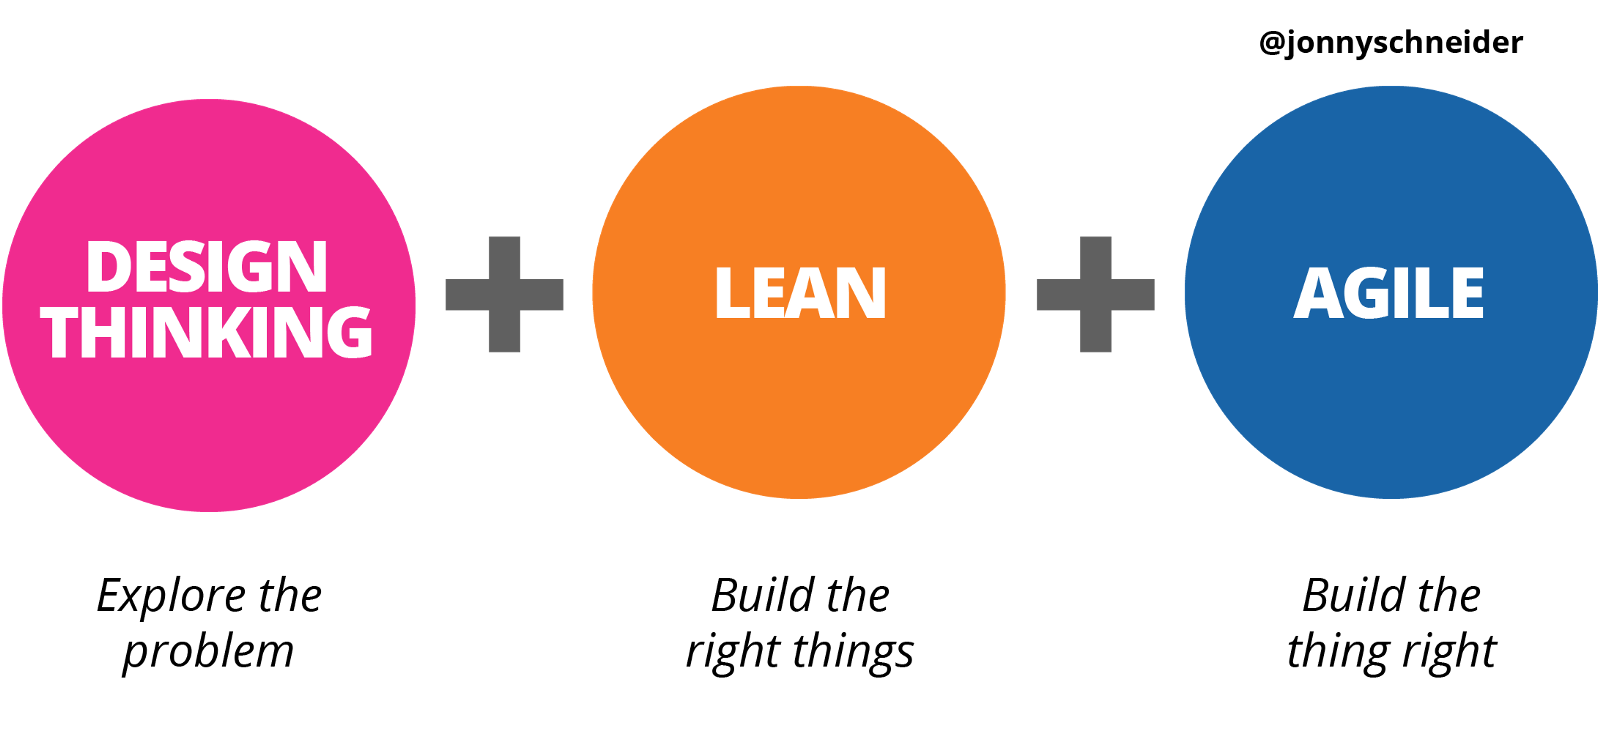 How Design Thinking Lean And Agile Work Together Hacker